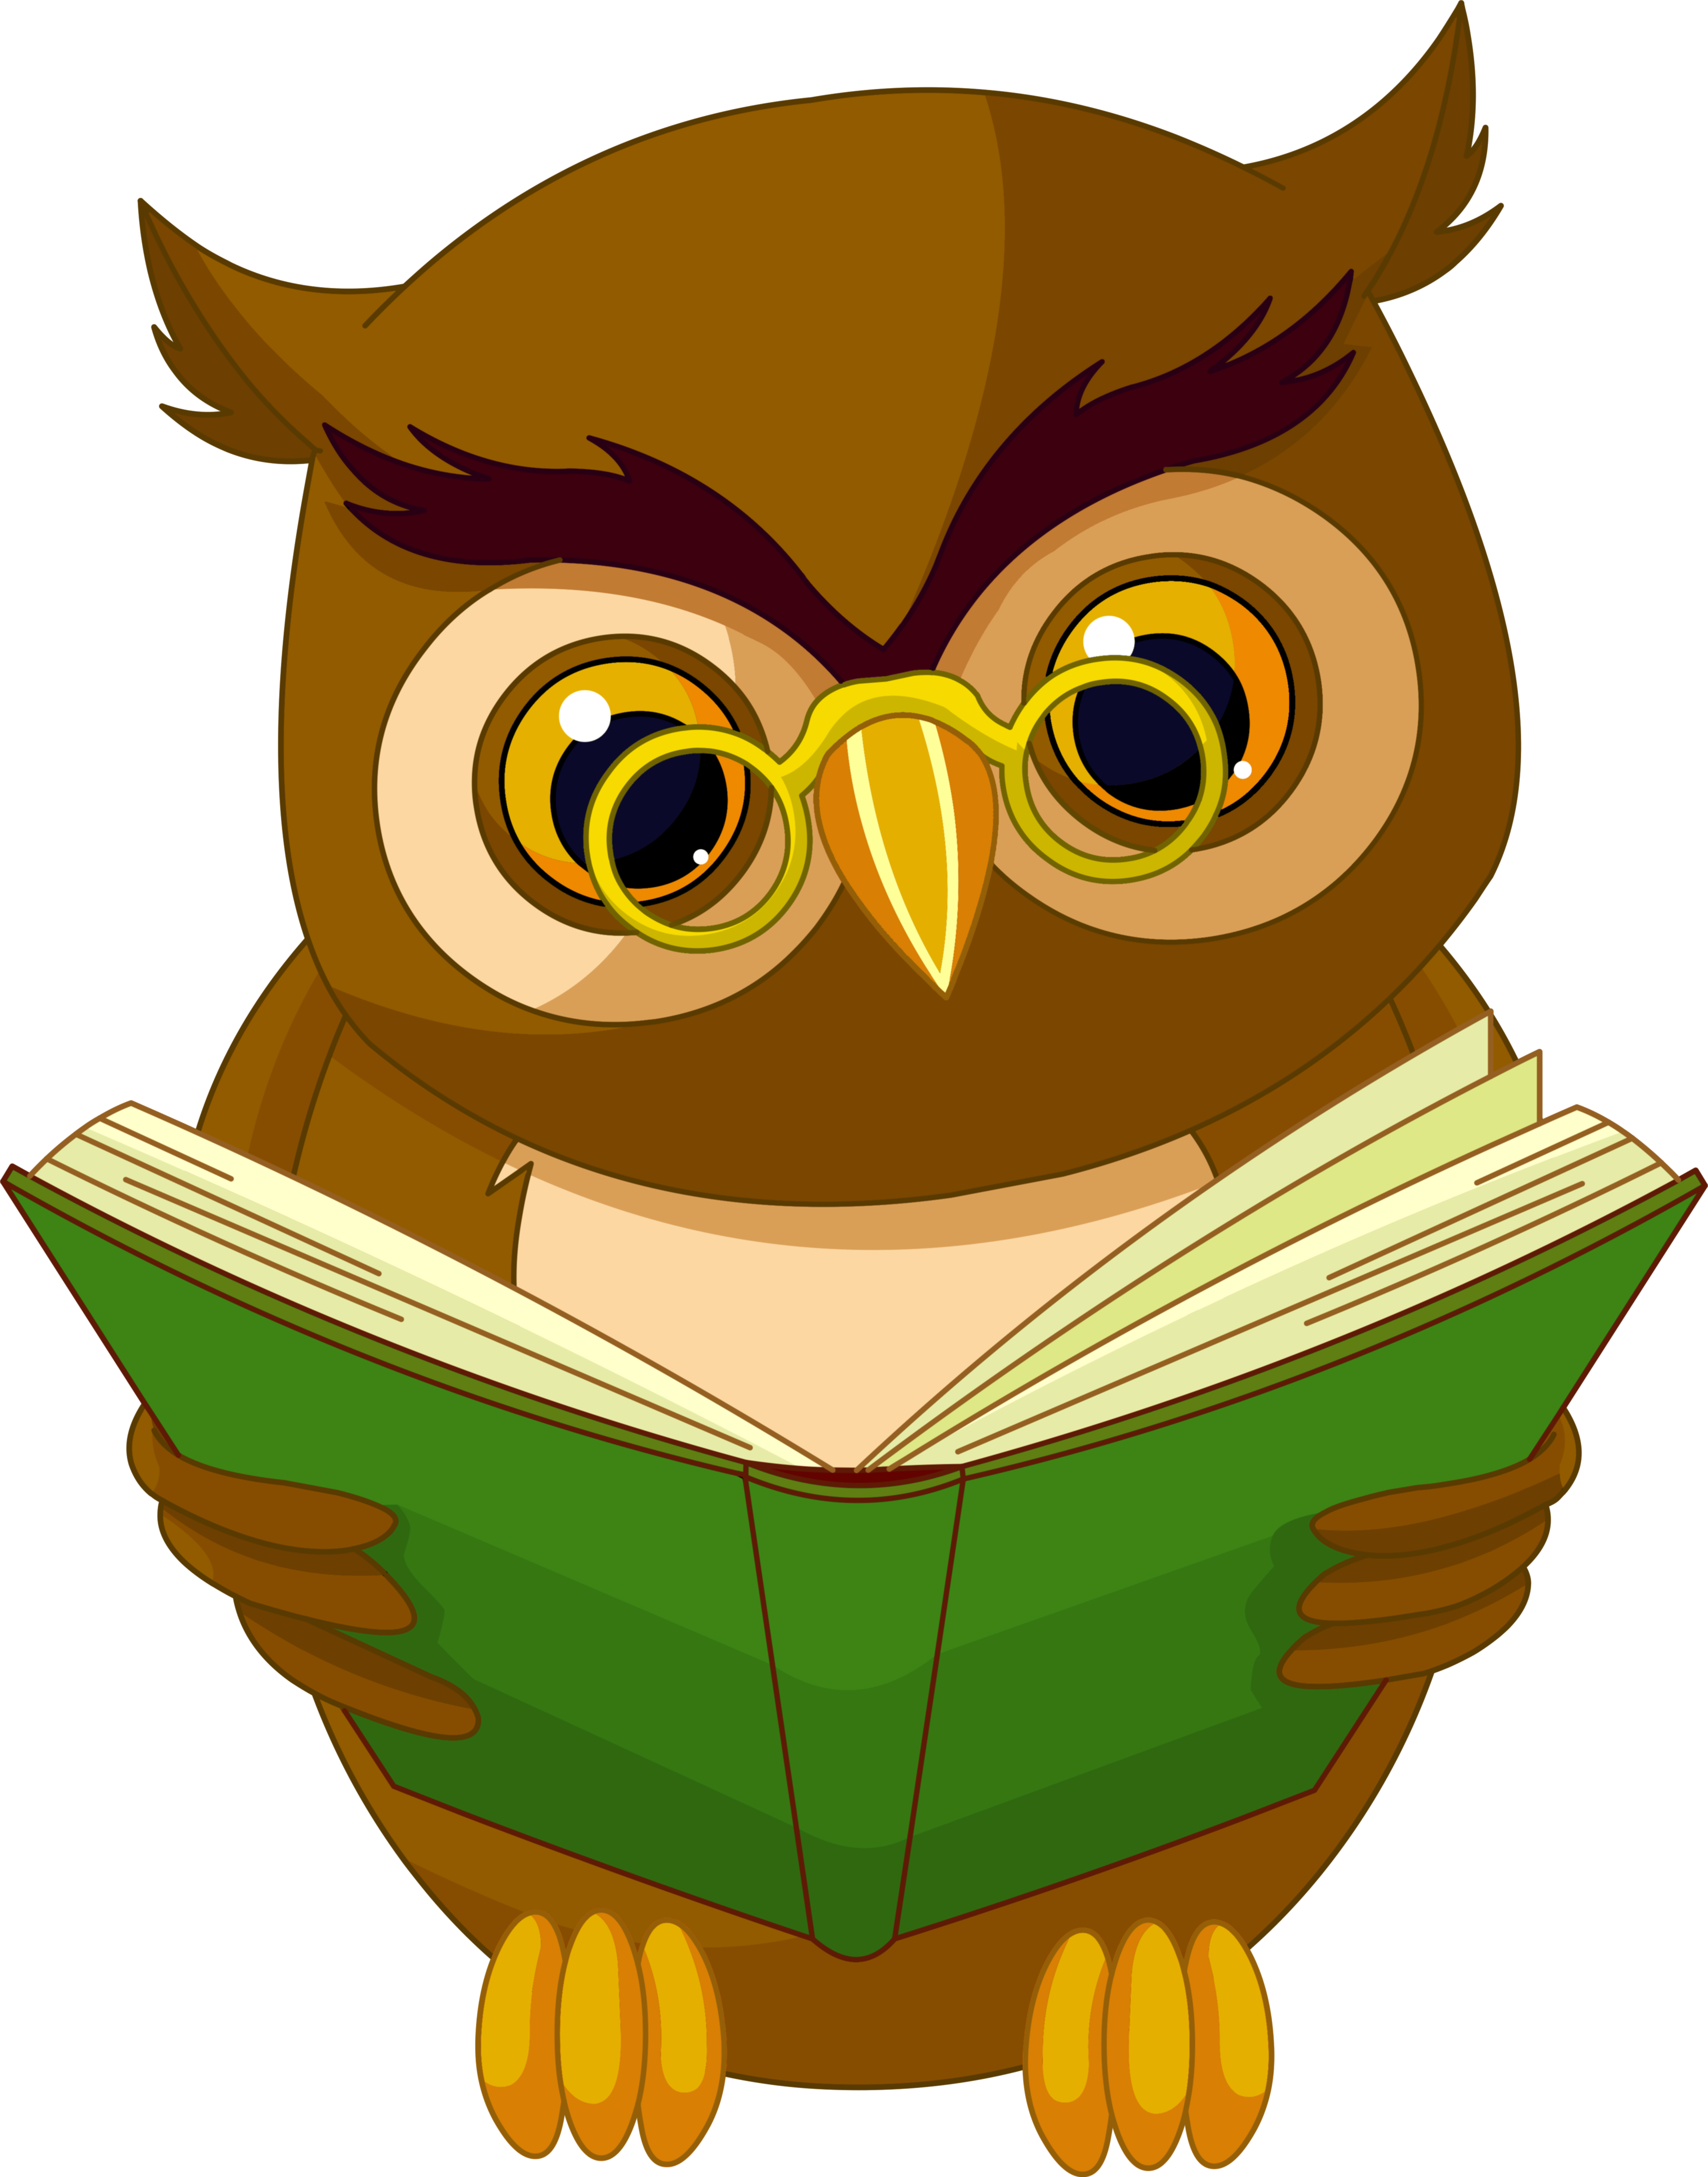 With book png clipart. Owl clip art transparent background image black and white stock